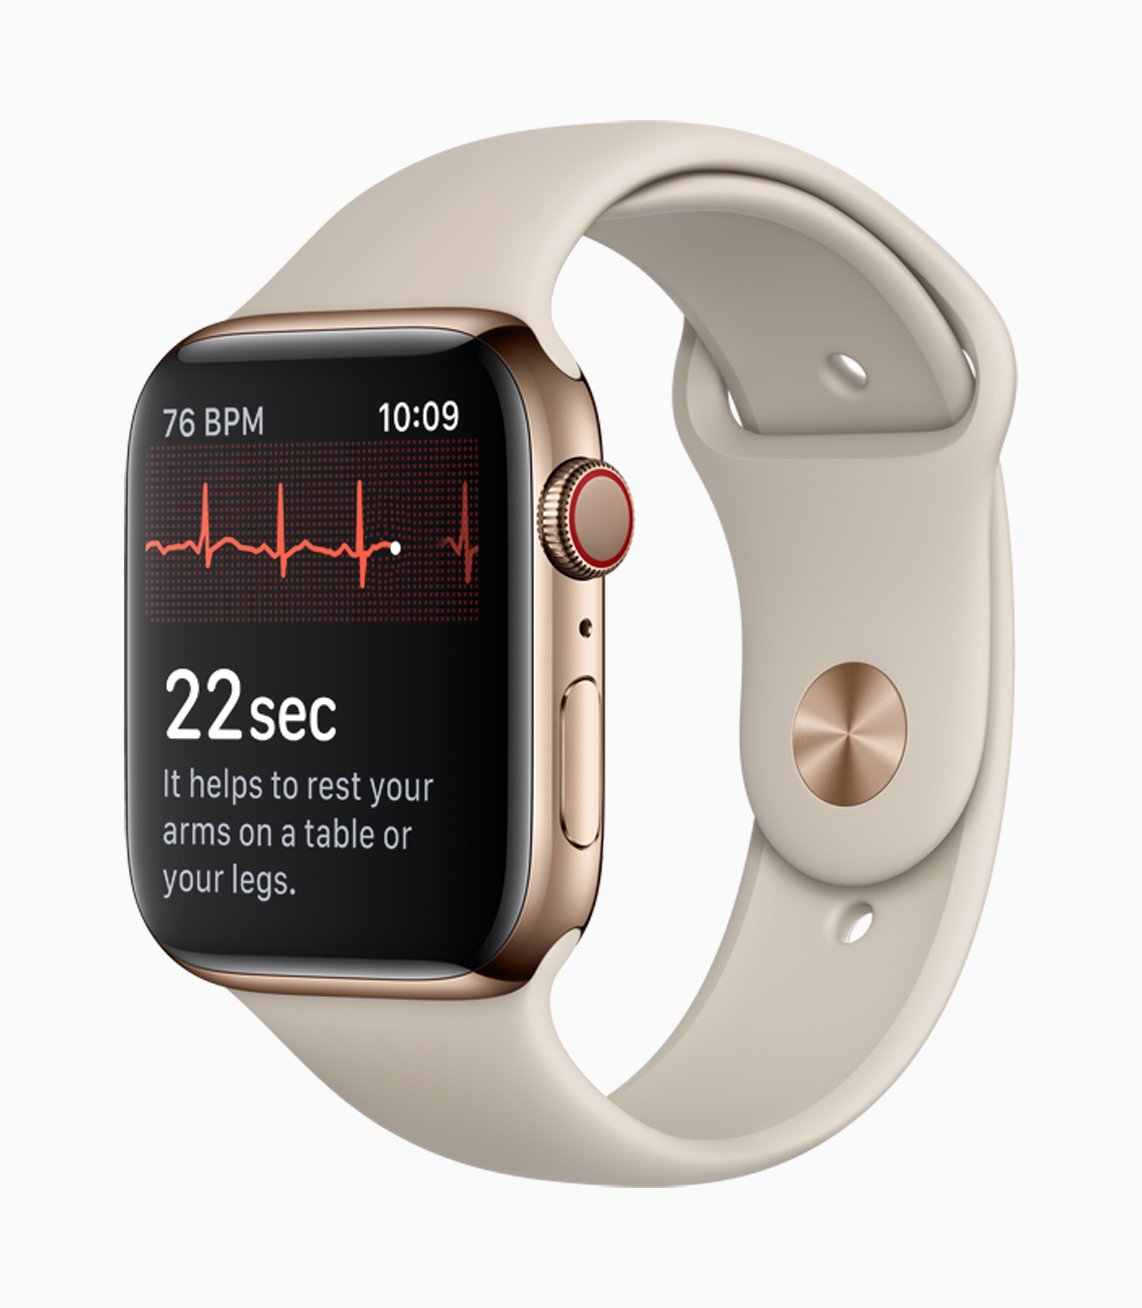 Měření EKG na Apple Watch 4